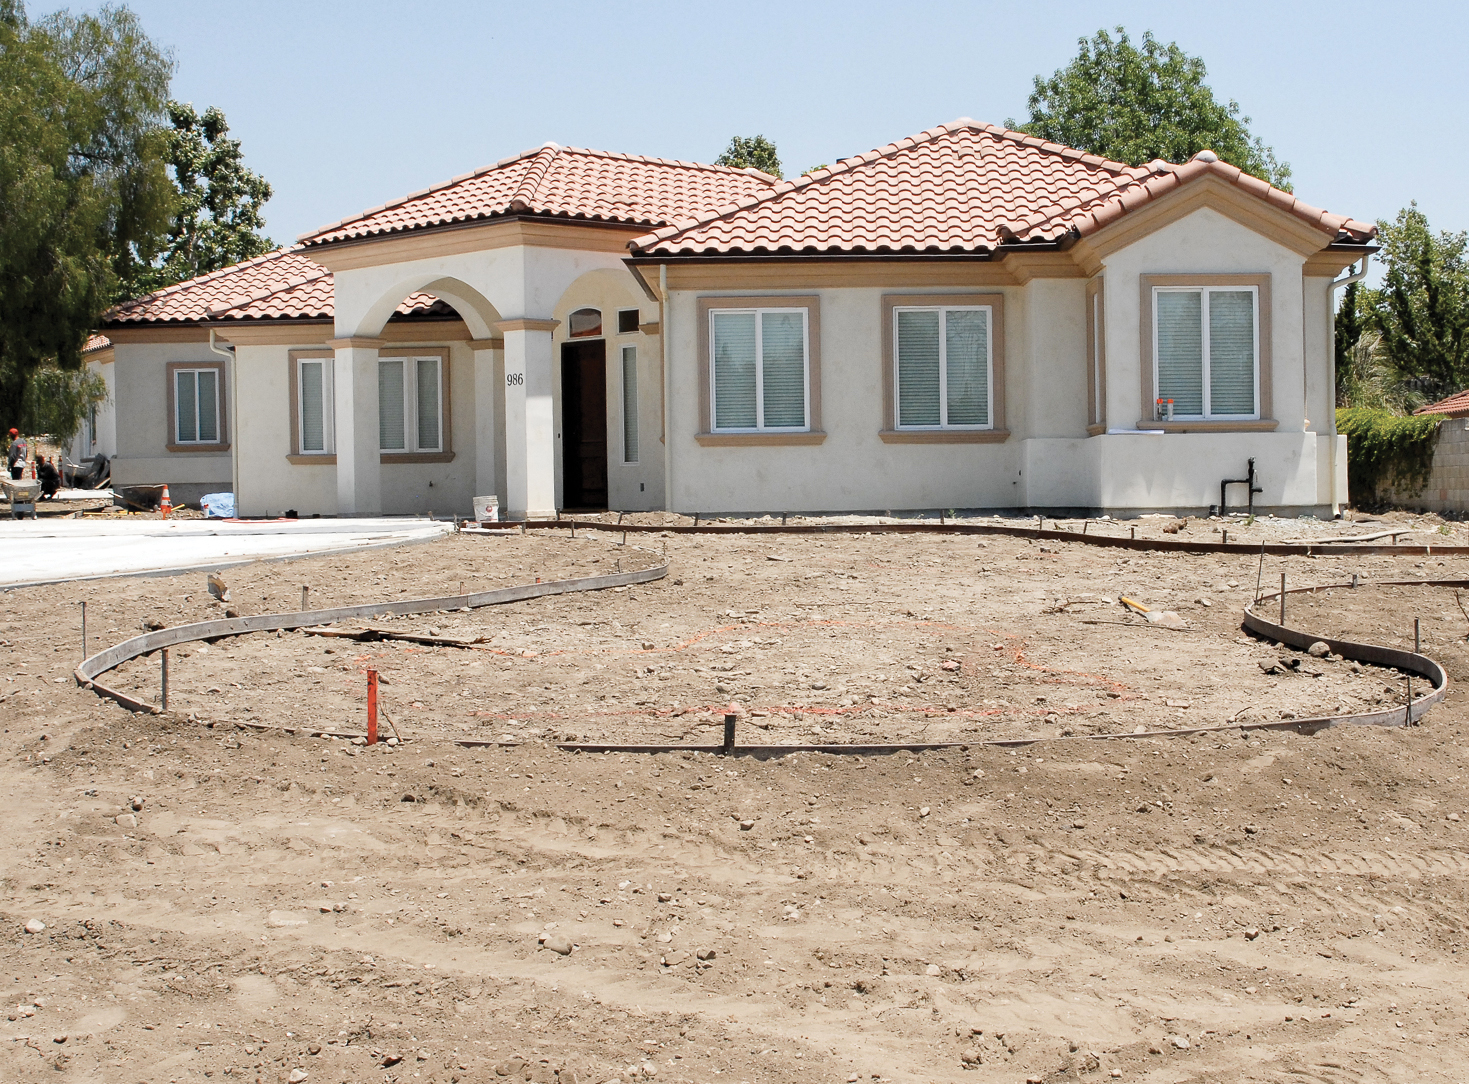 Grade property, prepare soil, and install irrigation.